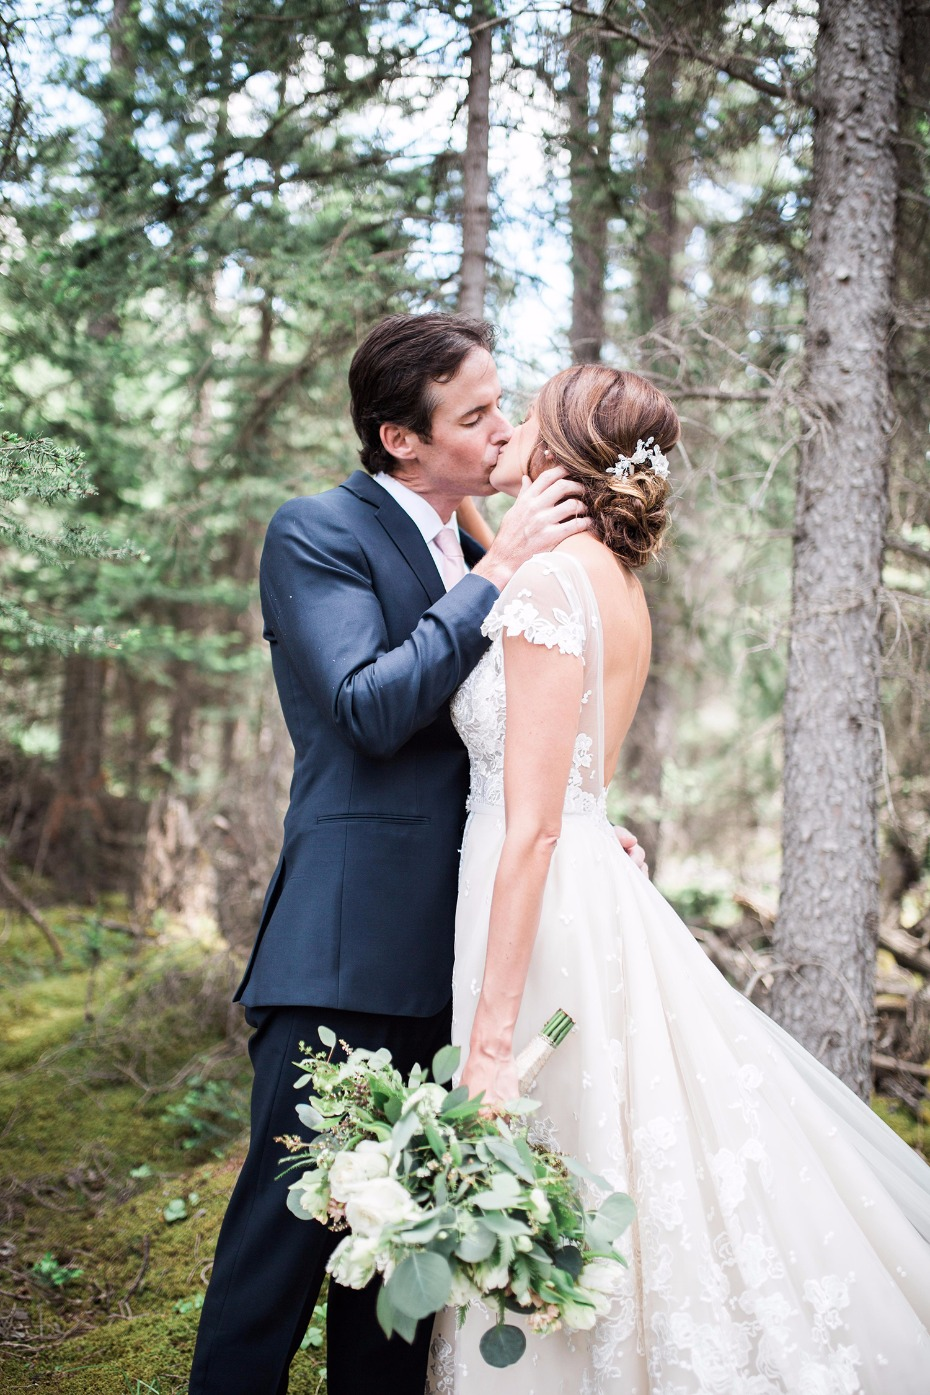 Beautiful Canadian Rockies wedding